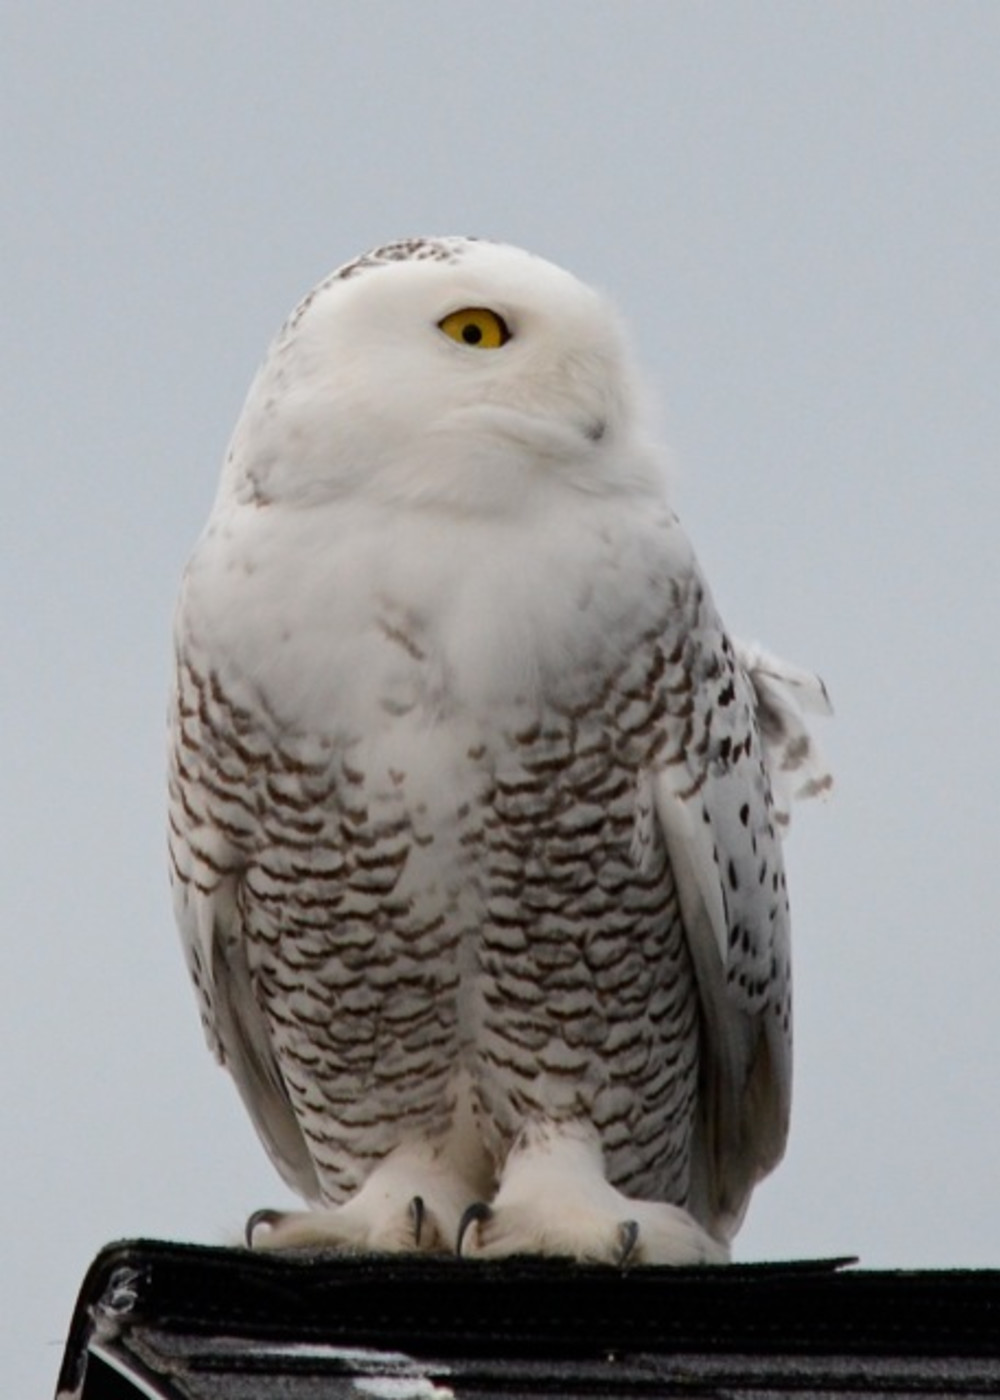 Snowy Owls near Bed & Breakfast, St. Ignatius, Montana